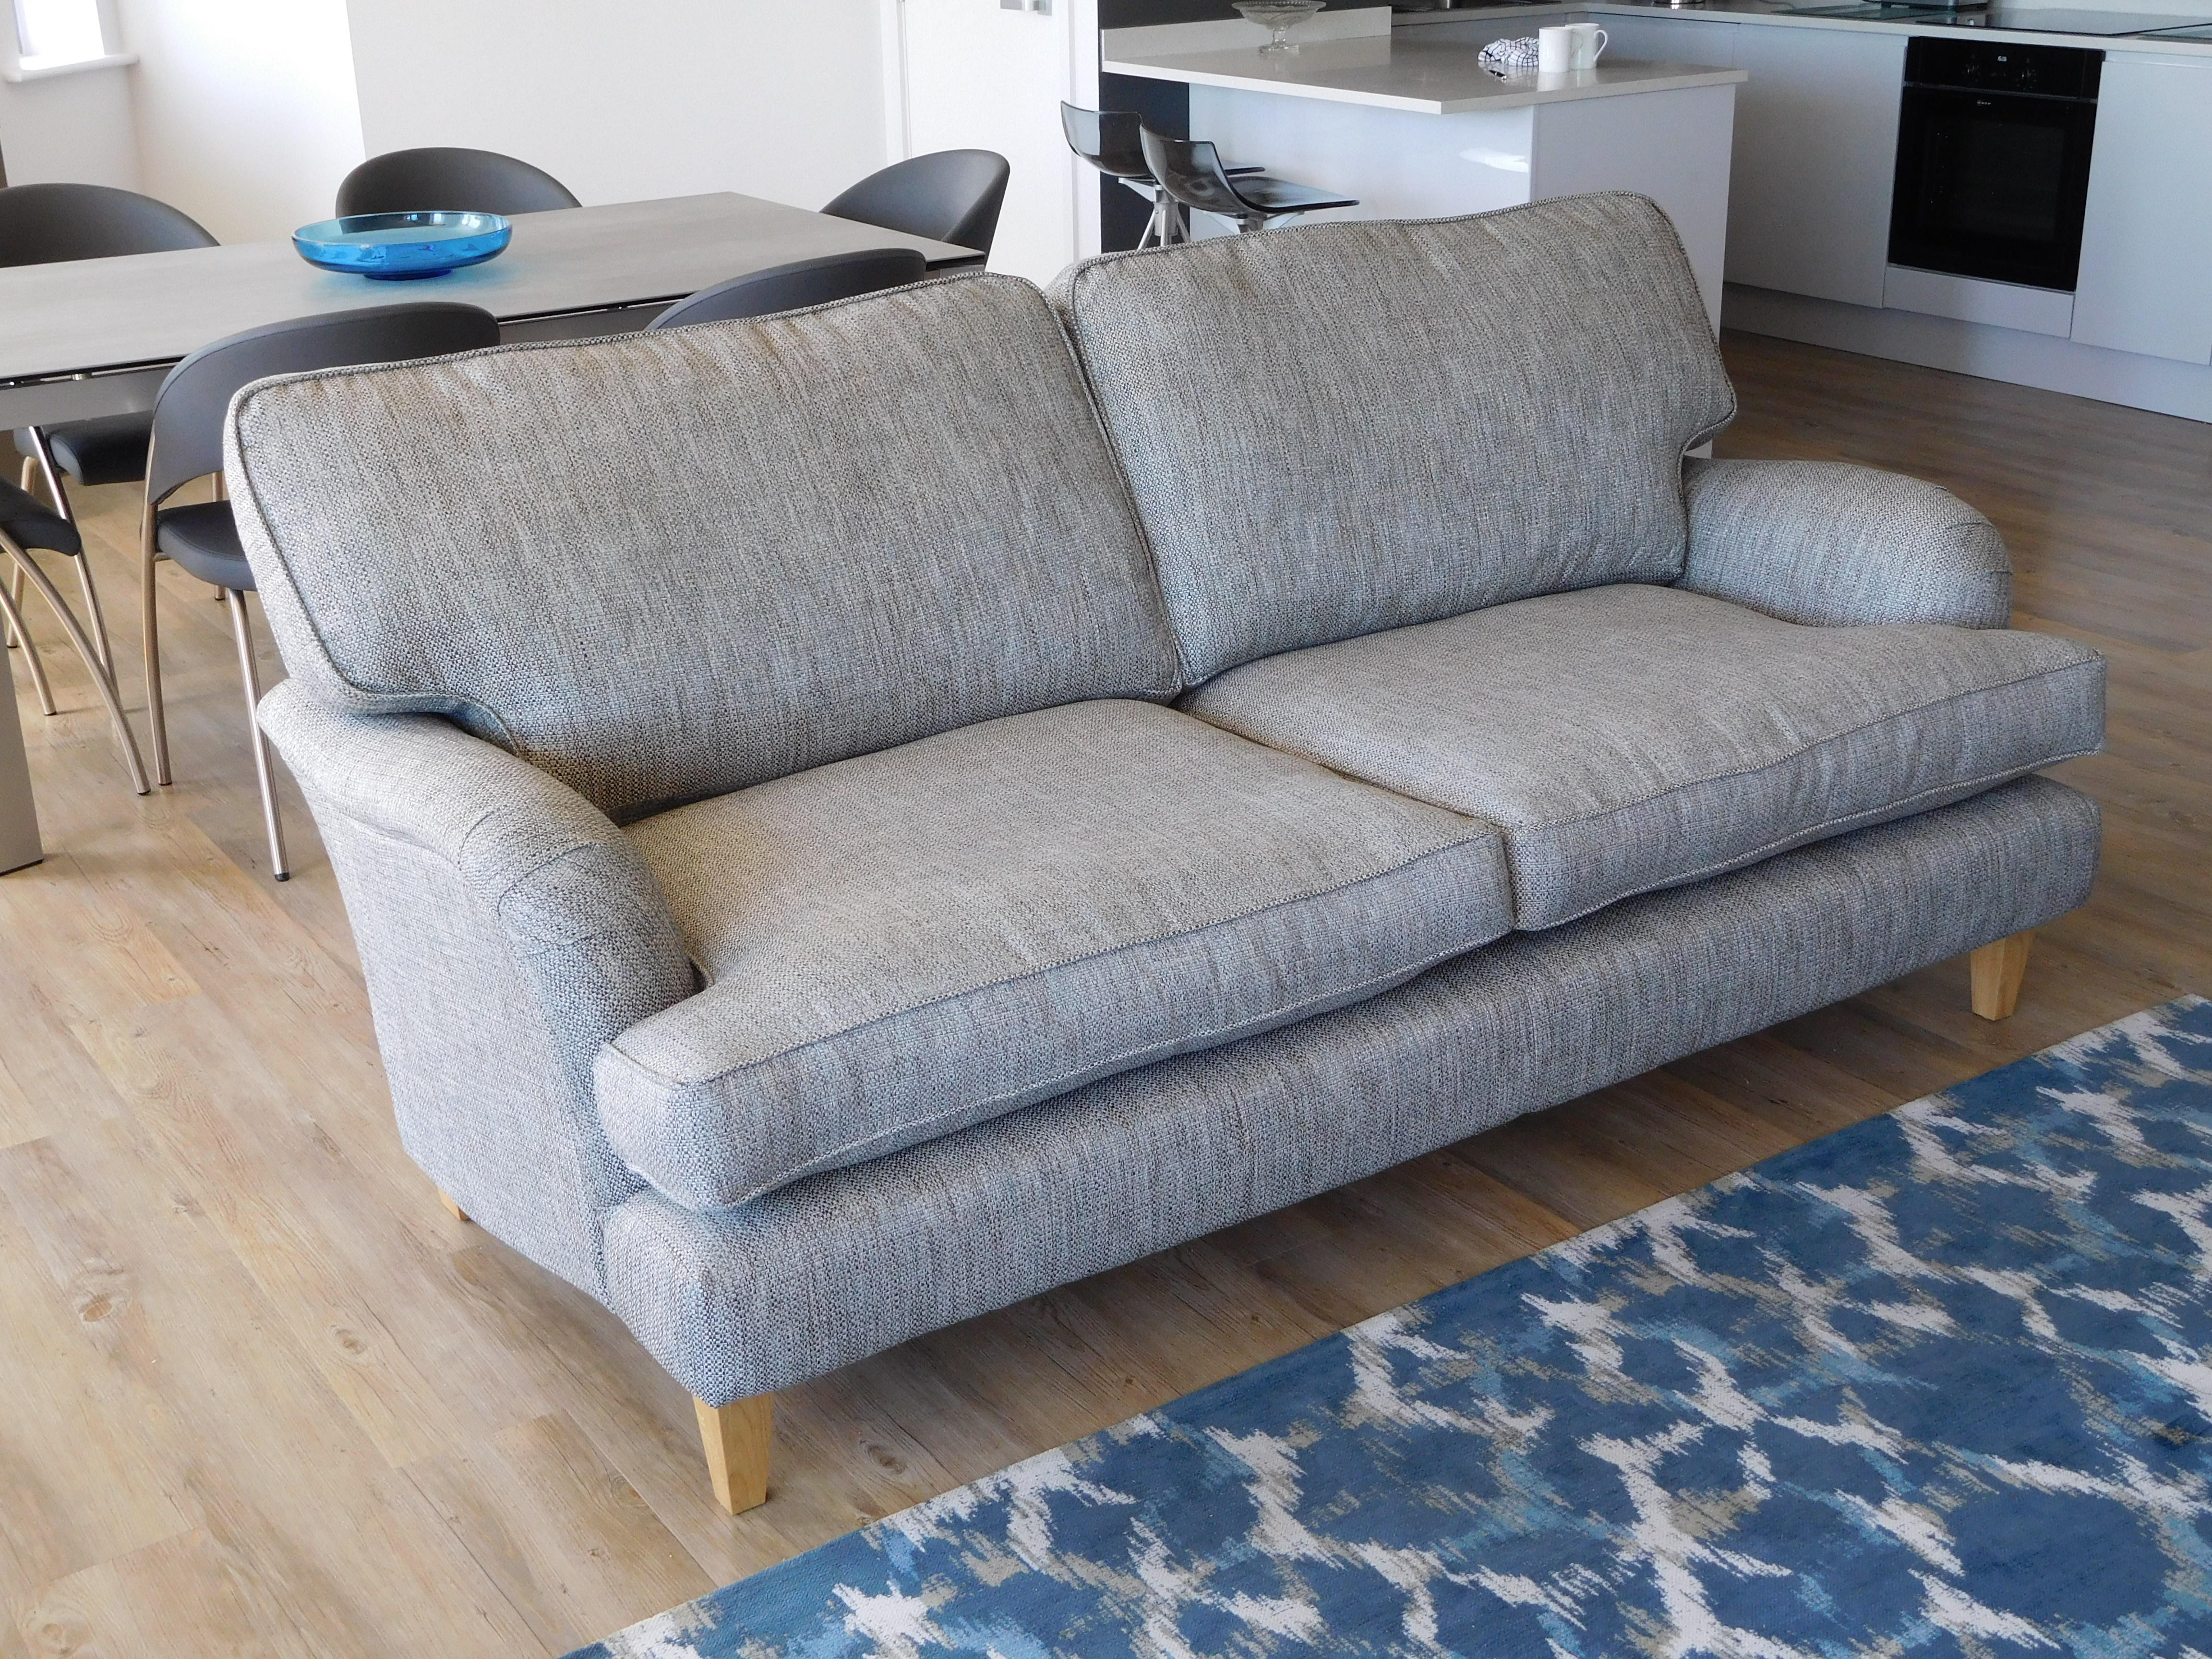 Magnificent 2 3 Seater Sofa In Eastbourne Expired Friday Ad Pabps2019 Chair Design Images Pabps2019Com